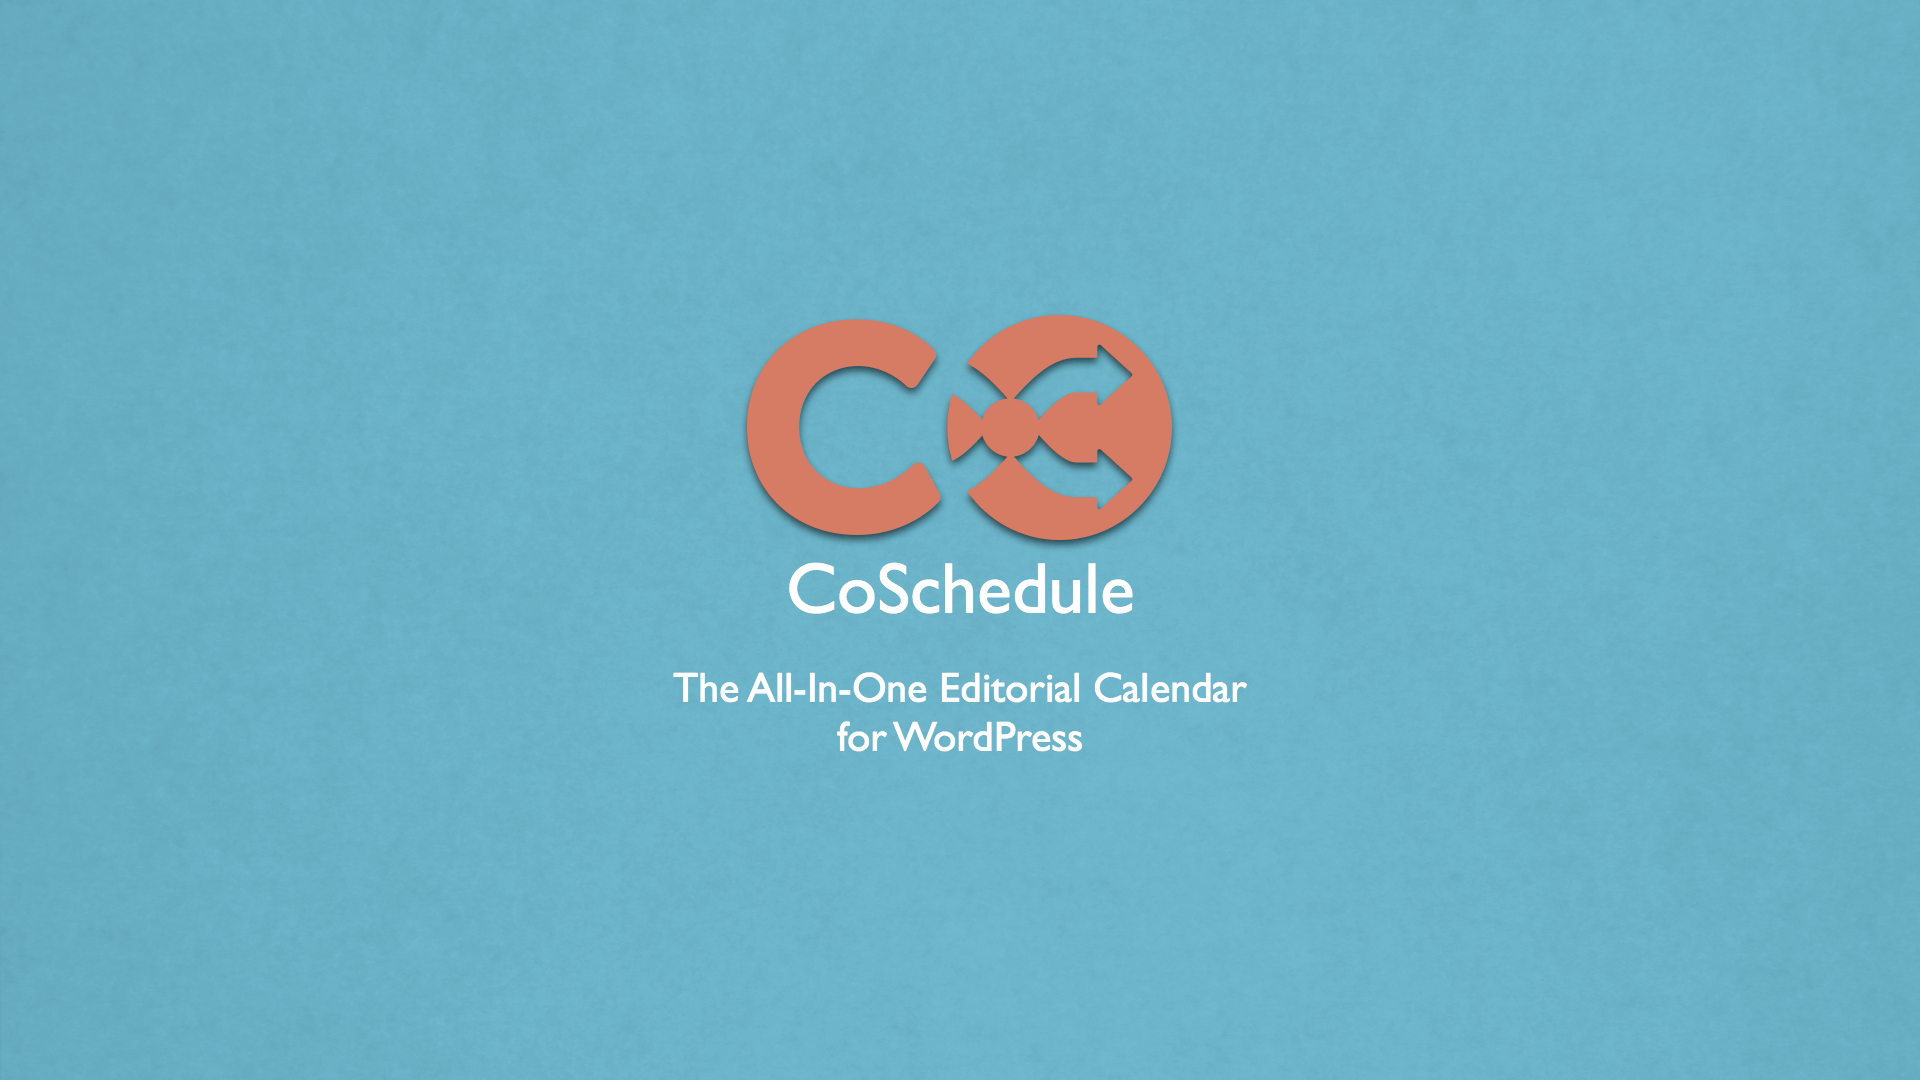 How To Install The CoSchedule WordPress Plugin